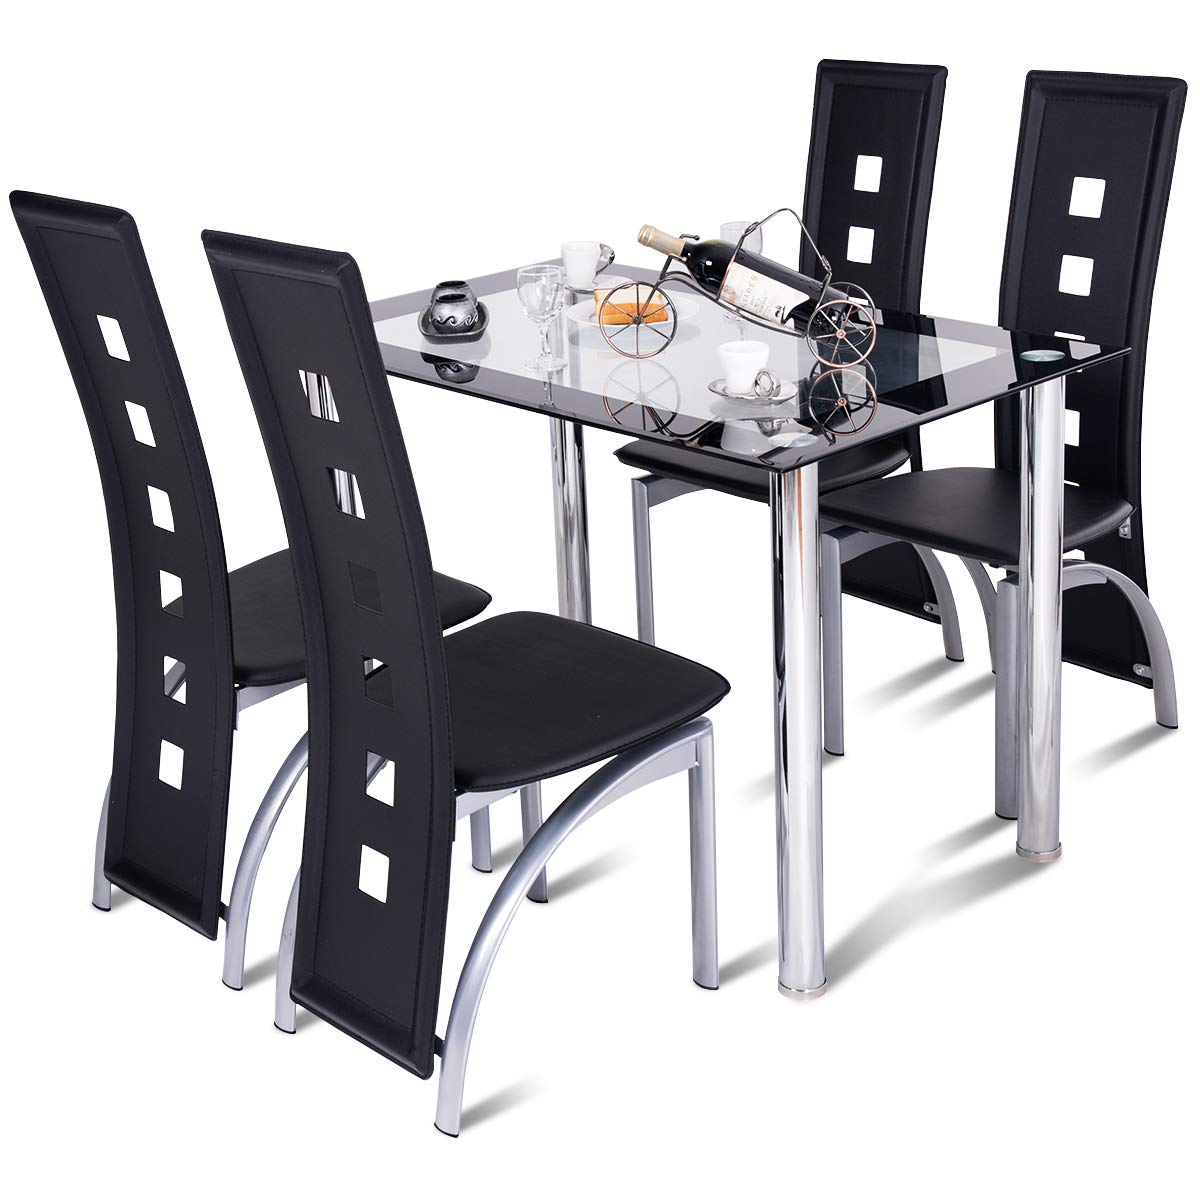 Tangkula Dining Table Set 5 Piece Rectangle Table with Glass Top and 4 Chairs Home Dinette Furniture Kitchen Modern Sturdy Breakfast Table and Chairs Set